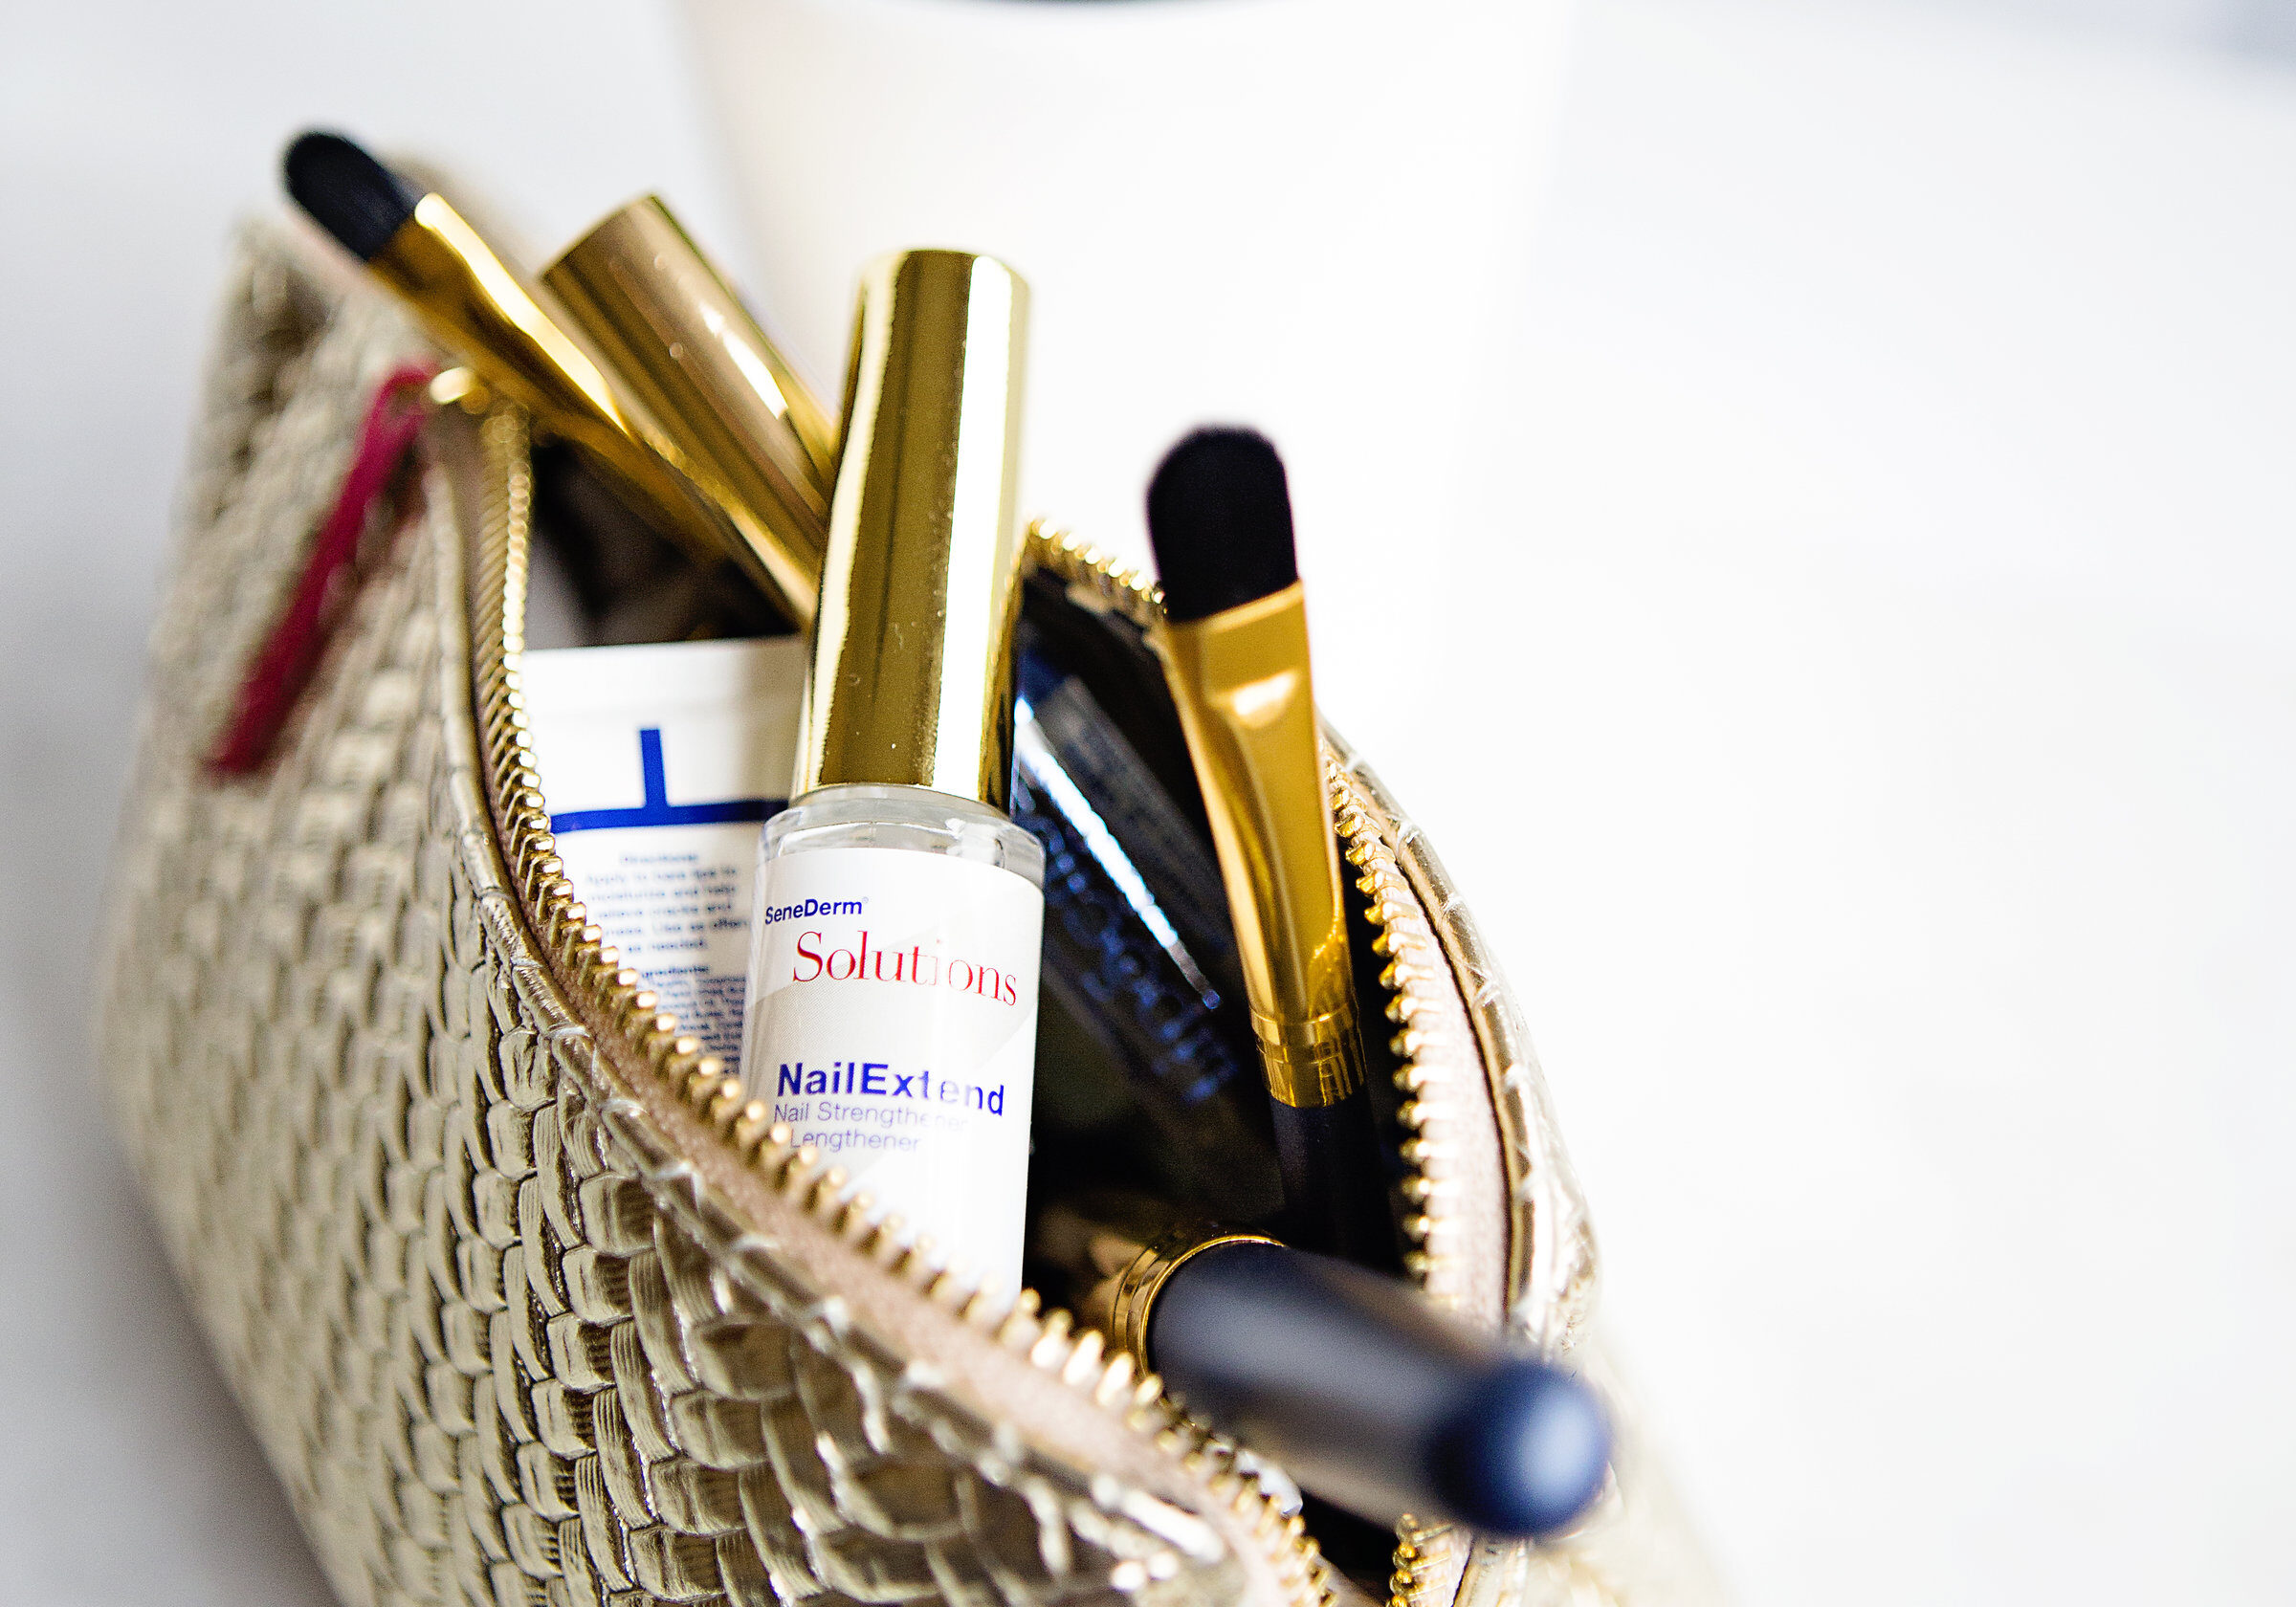 Product Shot Makeup Bag Portrait Nail Extend